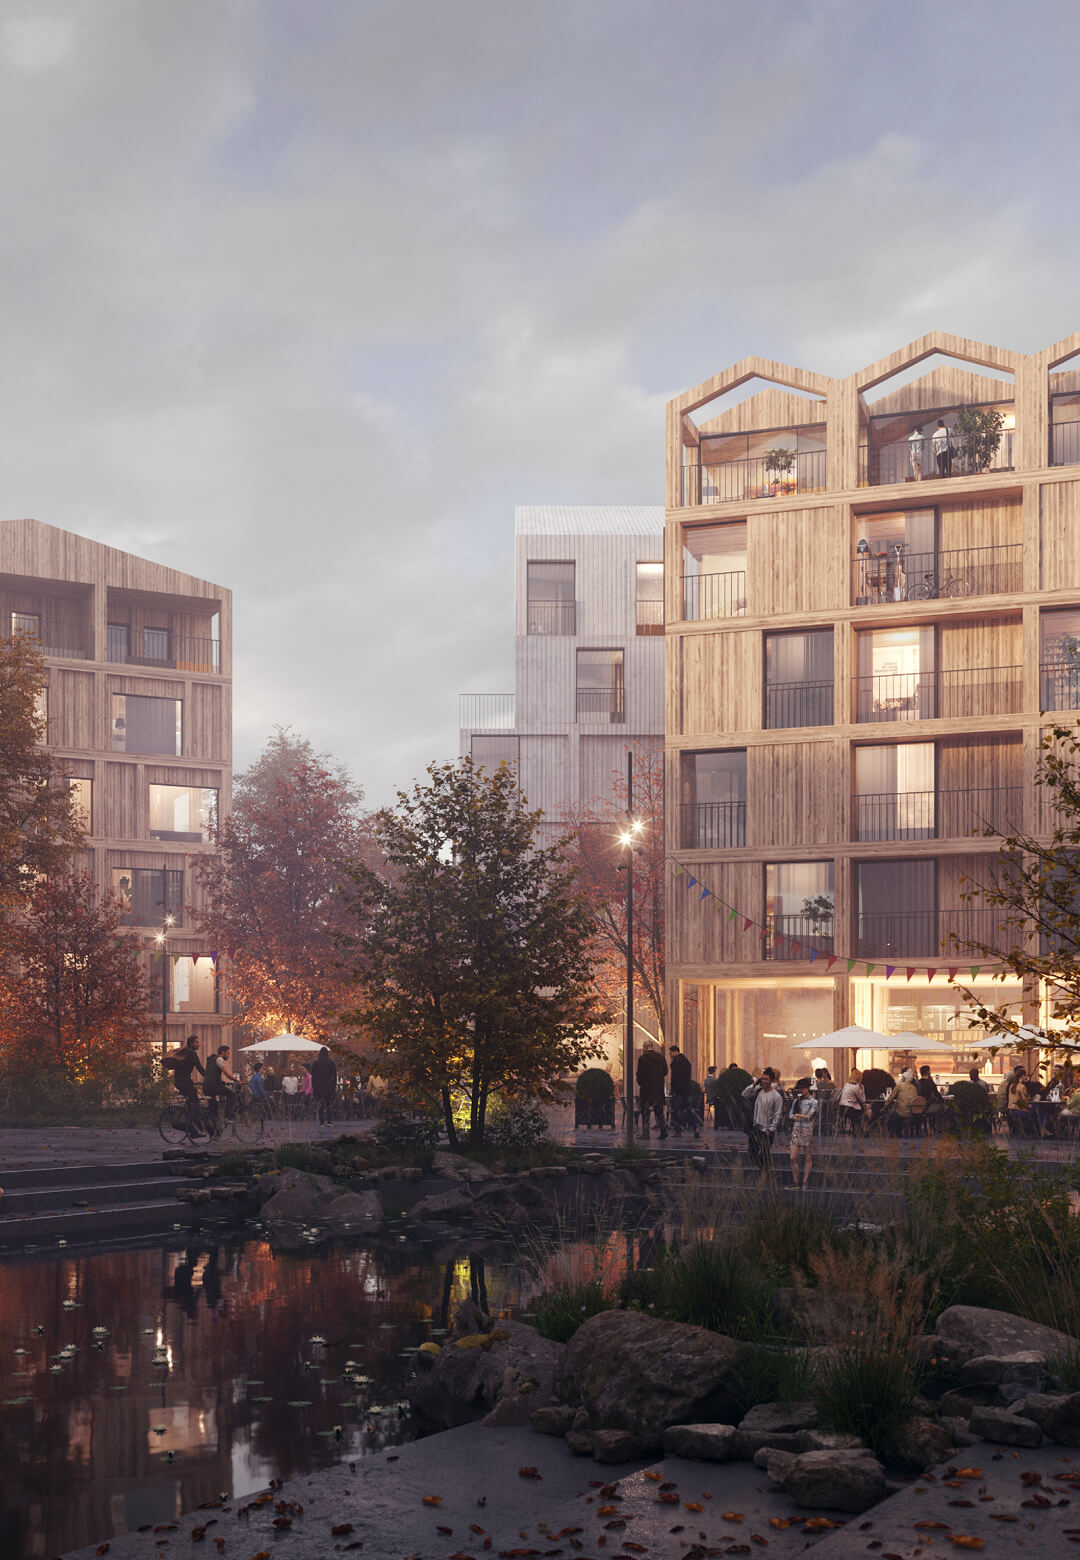 Visualisation of the Fælledby neighbourhood | Fælledby | Henning Larsen | STIRworld